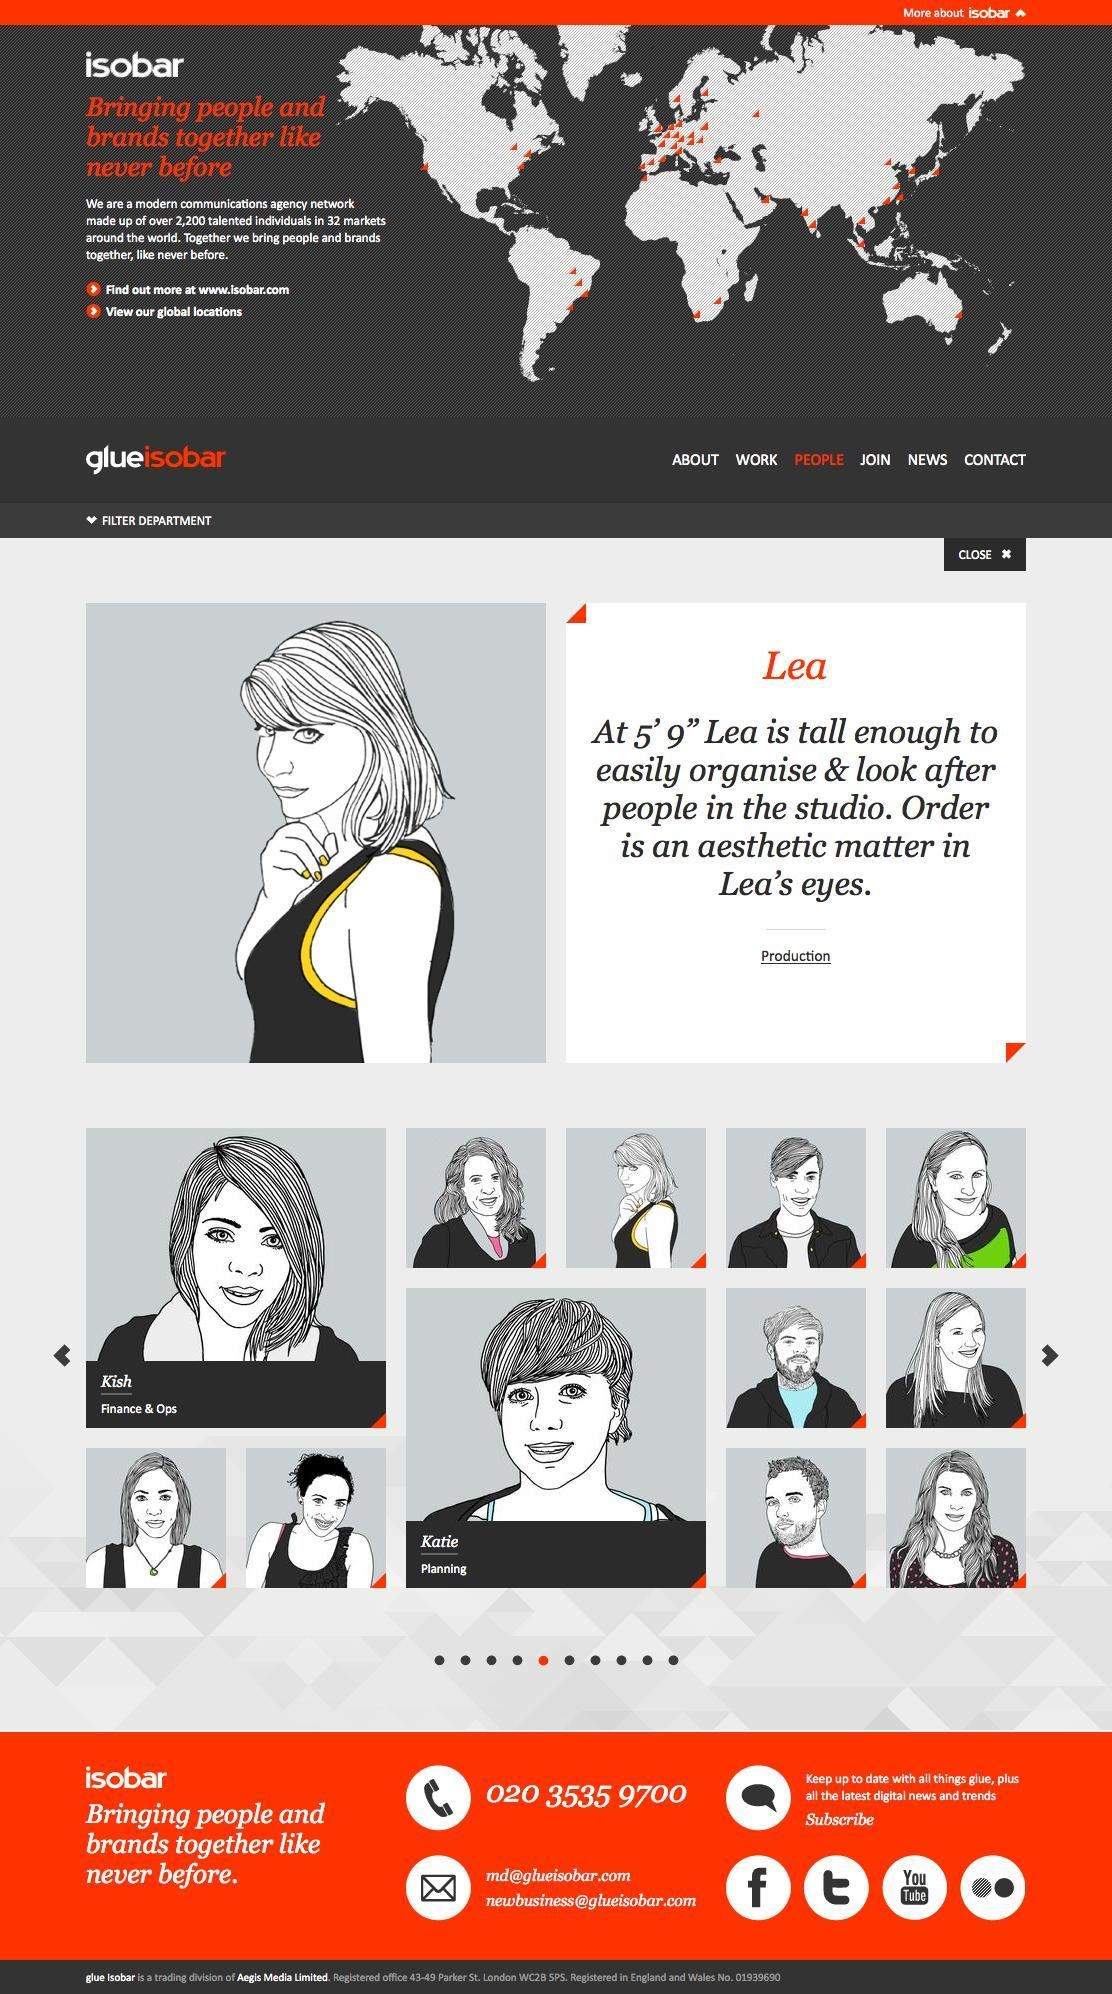 Best About Pages – Showcasing the best of the best about pages on the web » Glue Isobar